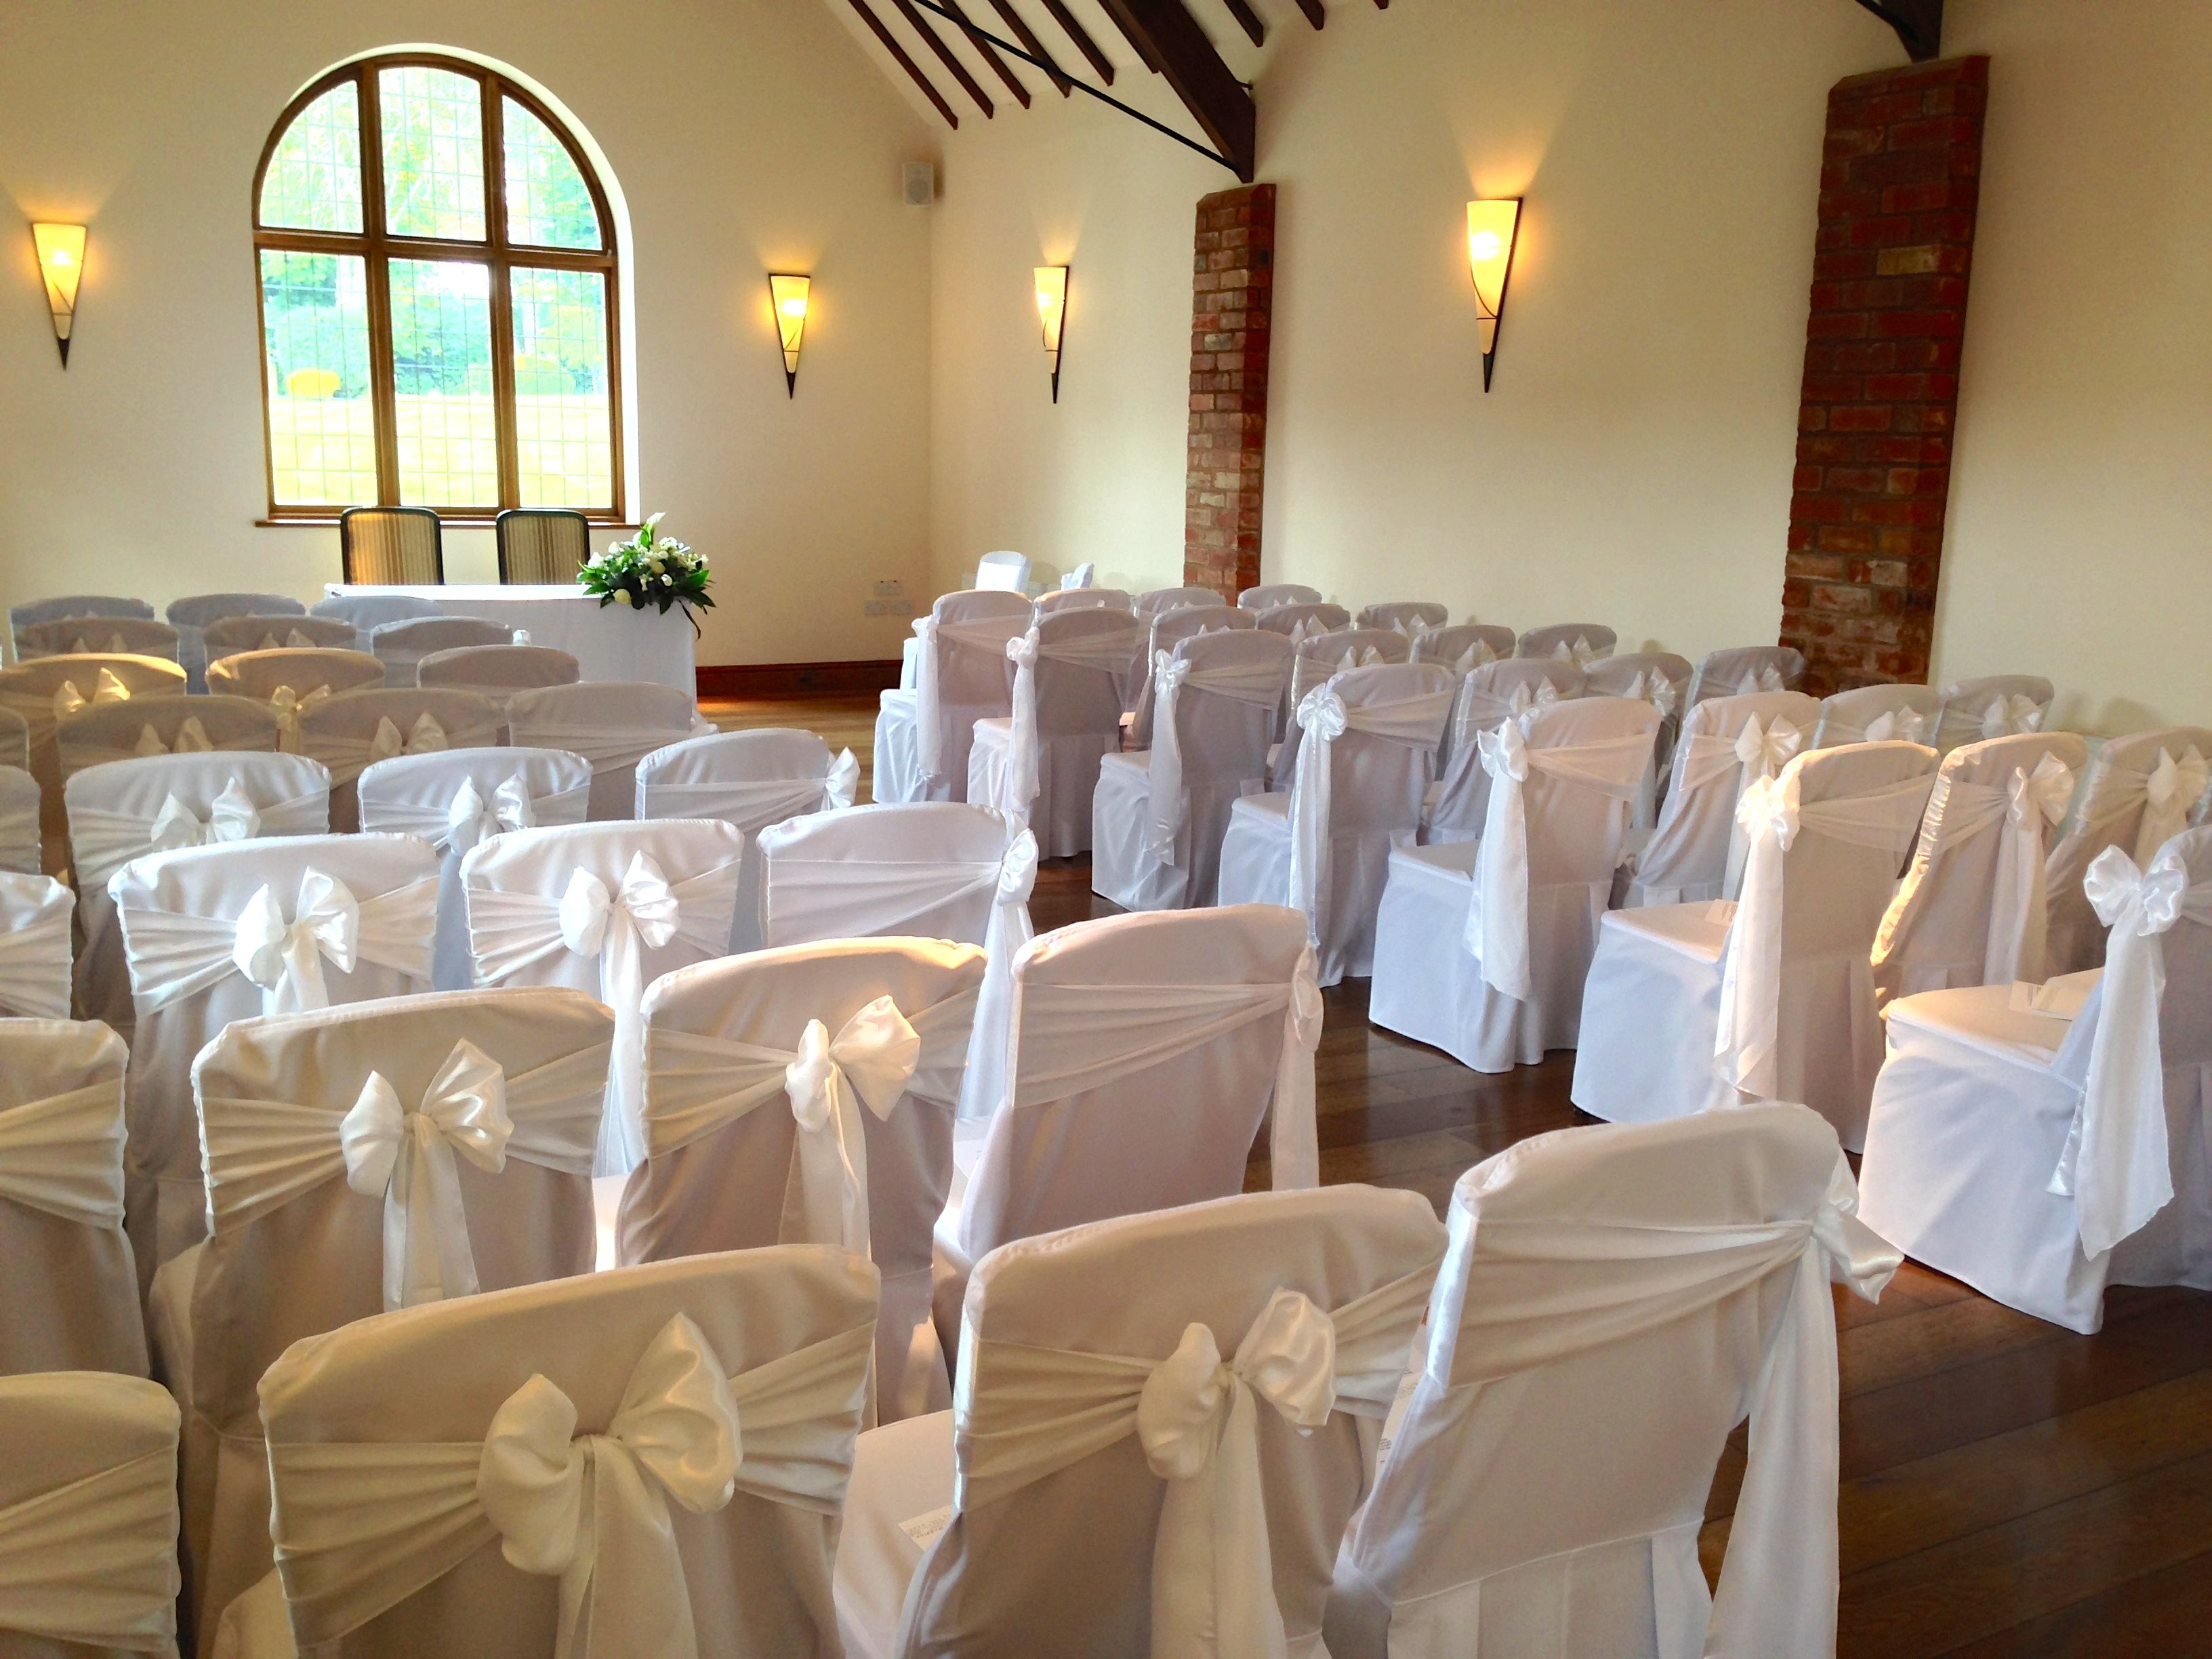 Chair covers with white satin sashes at Nuthurst Grange Provided